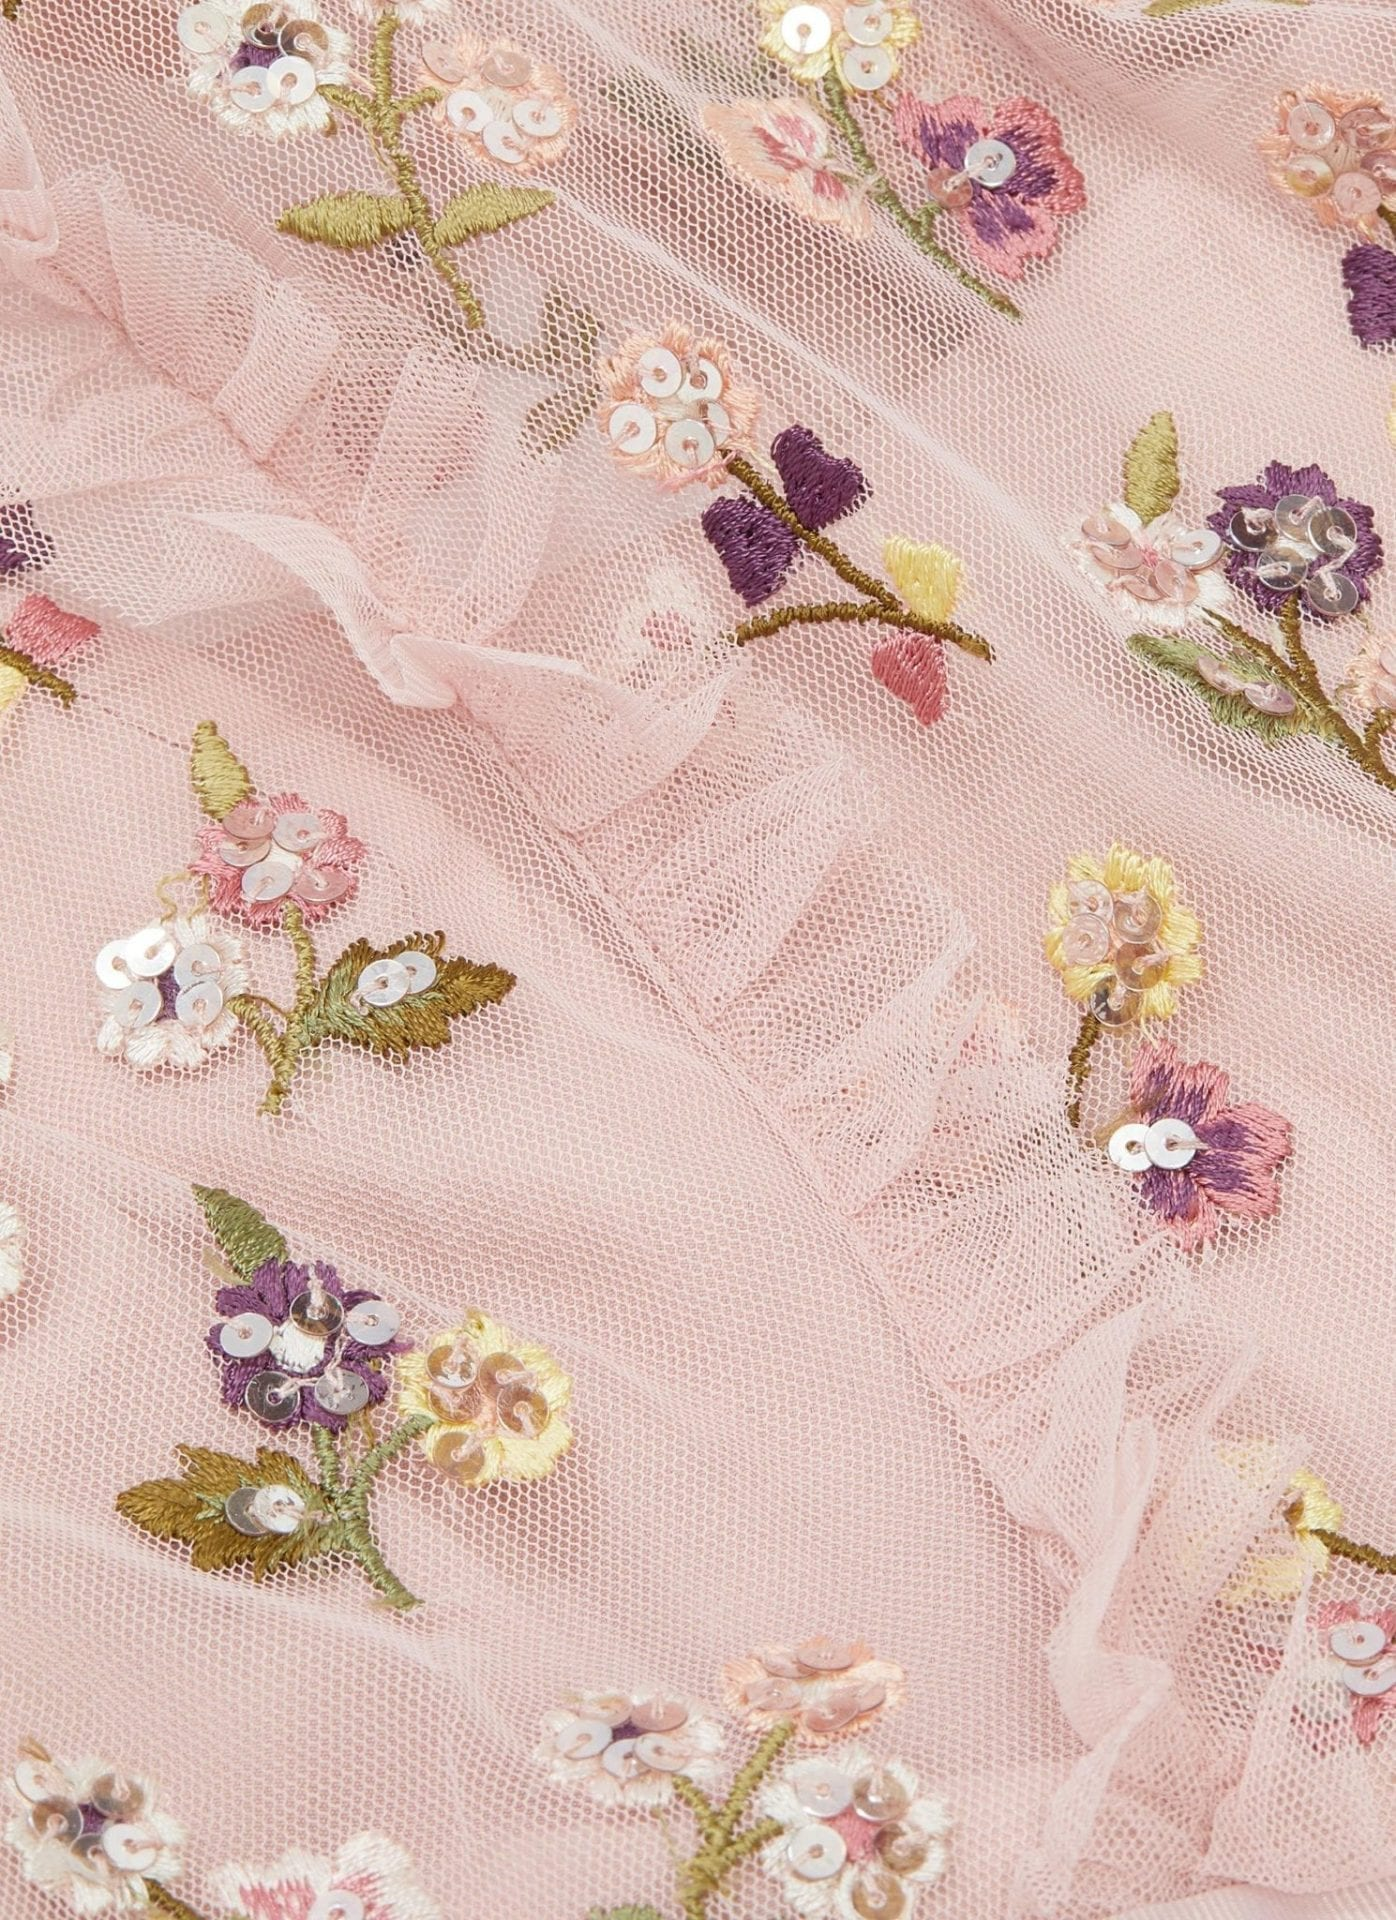 NEEDLE & THREAD 'Rococo Ditsy' Sequin Floral Embroidered Ruffle Tulle Pink Dress